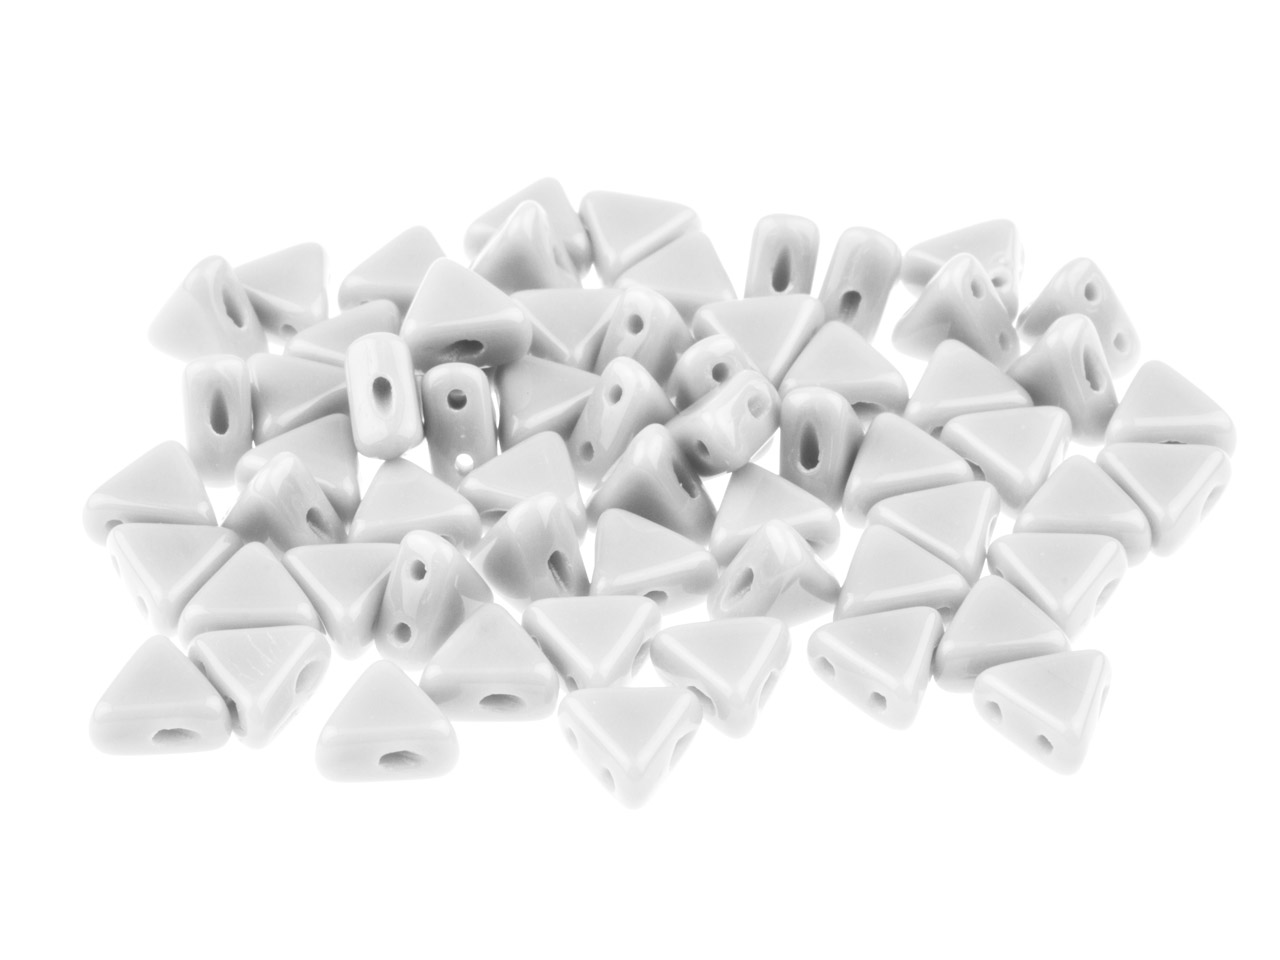 Kheops Puca 6mm Czech Beads, Opaque White, 9g Tube, Two-holed Beads